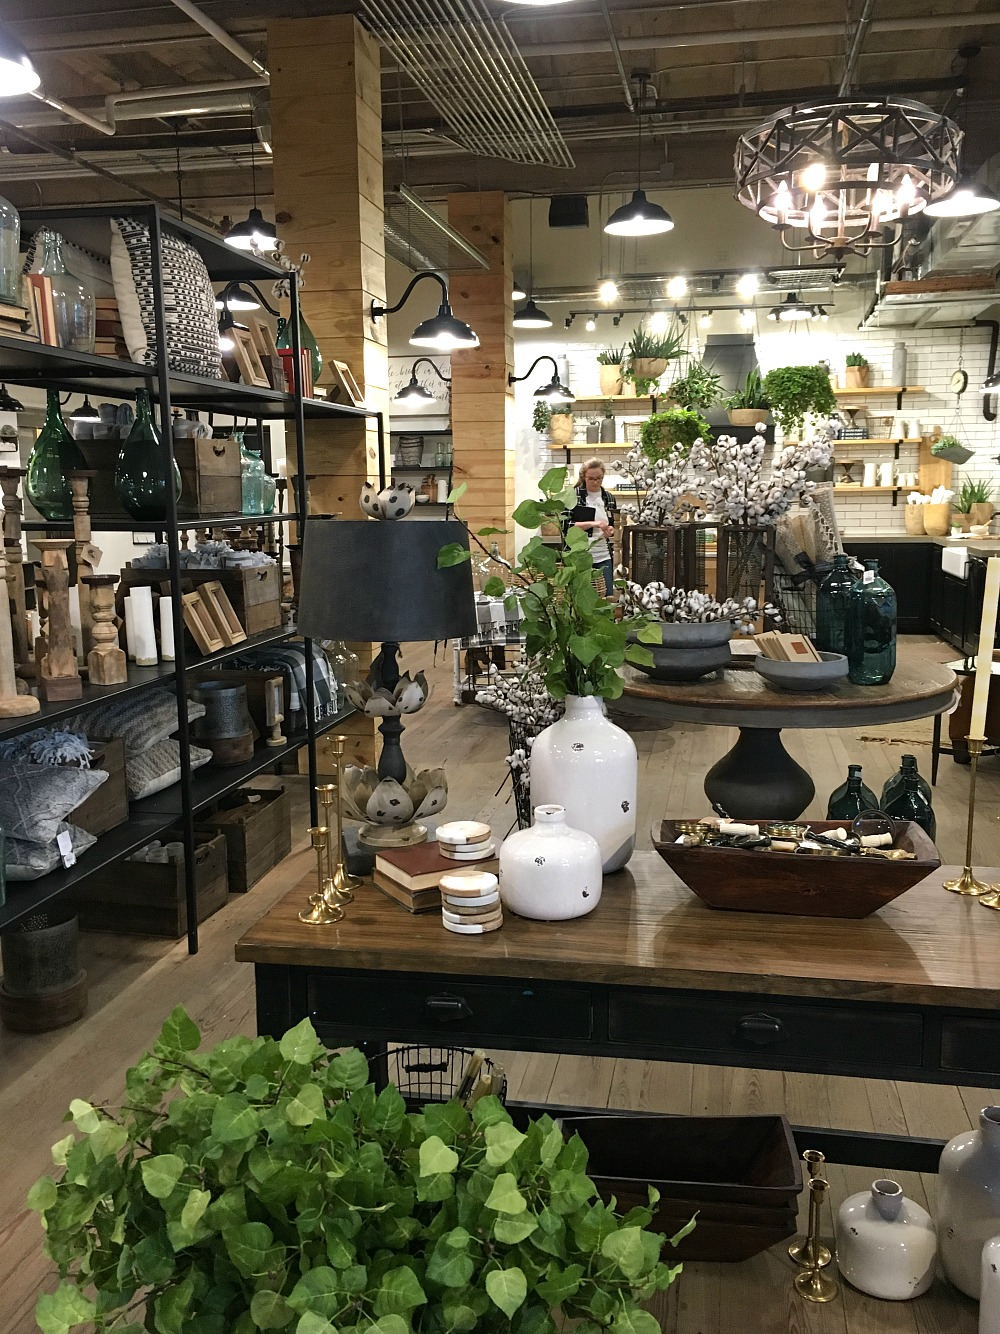 My Trip To Magnolia Market Amp Things To Know If You Visit